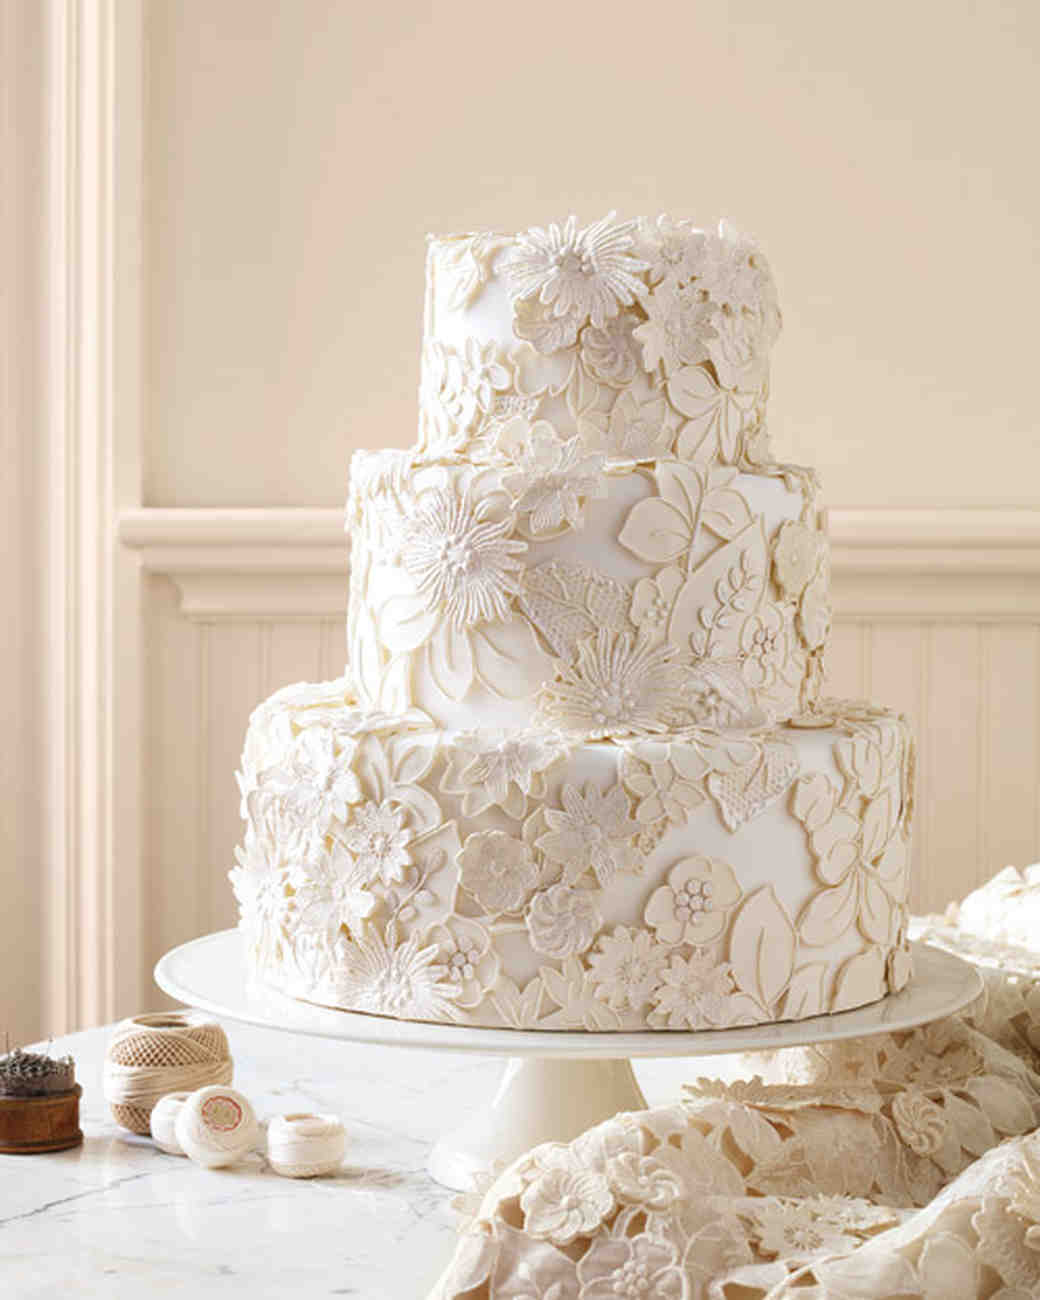 Three-Tiered White Wedding Cake with Floral Appliques